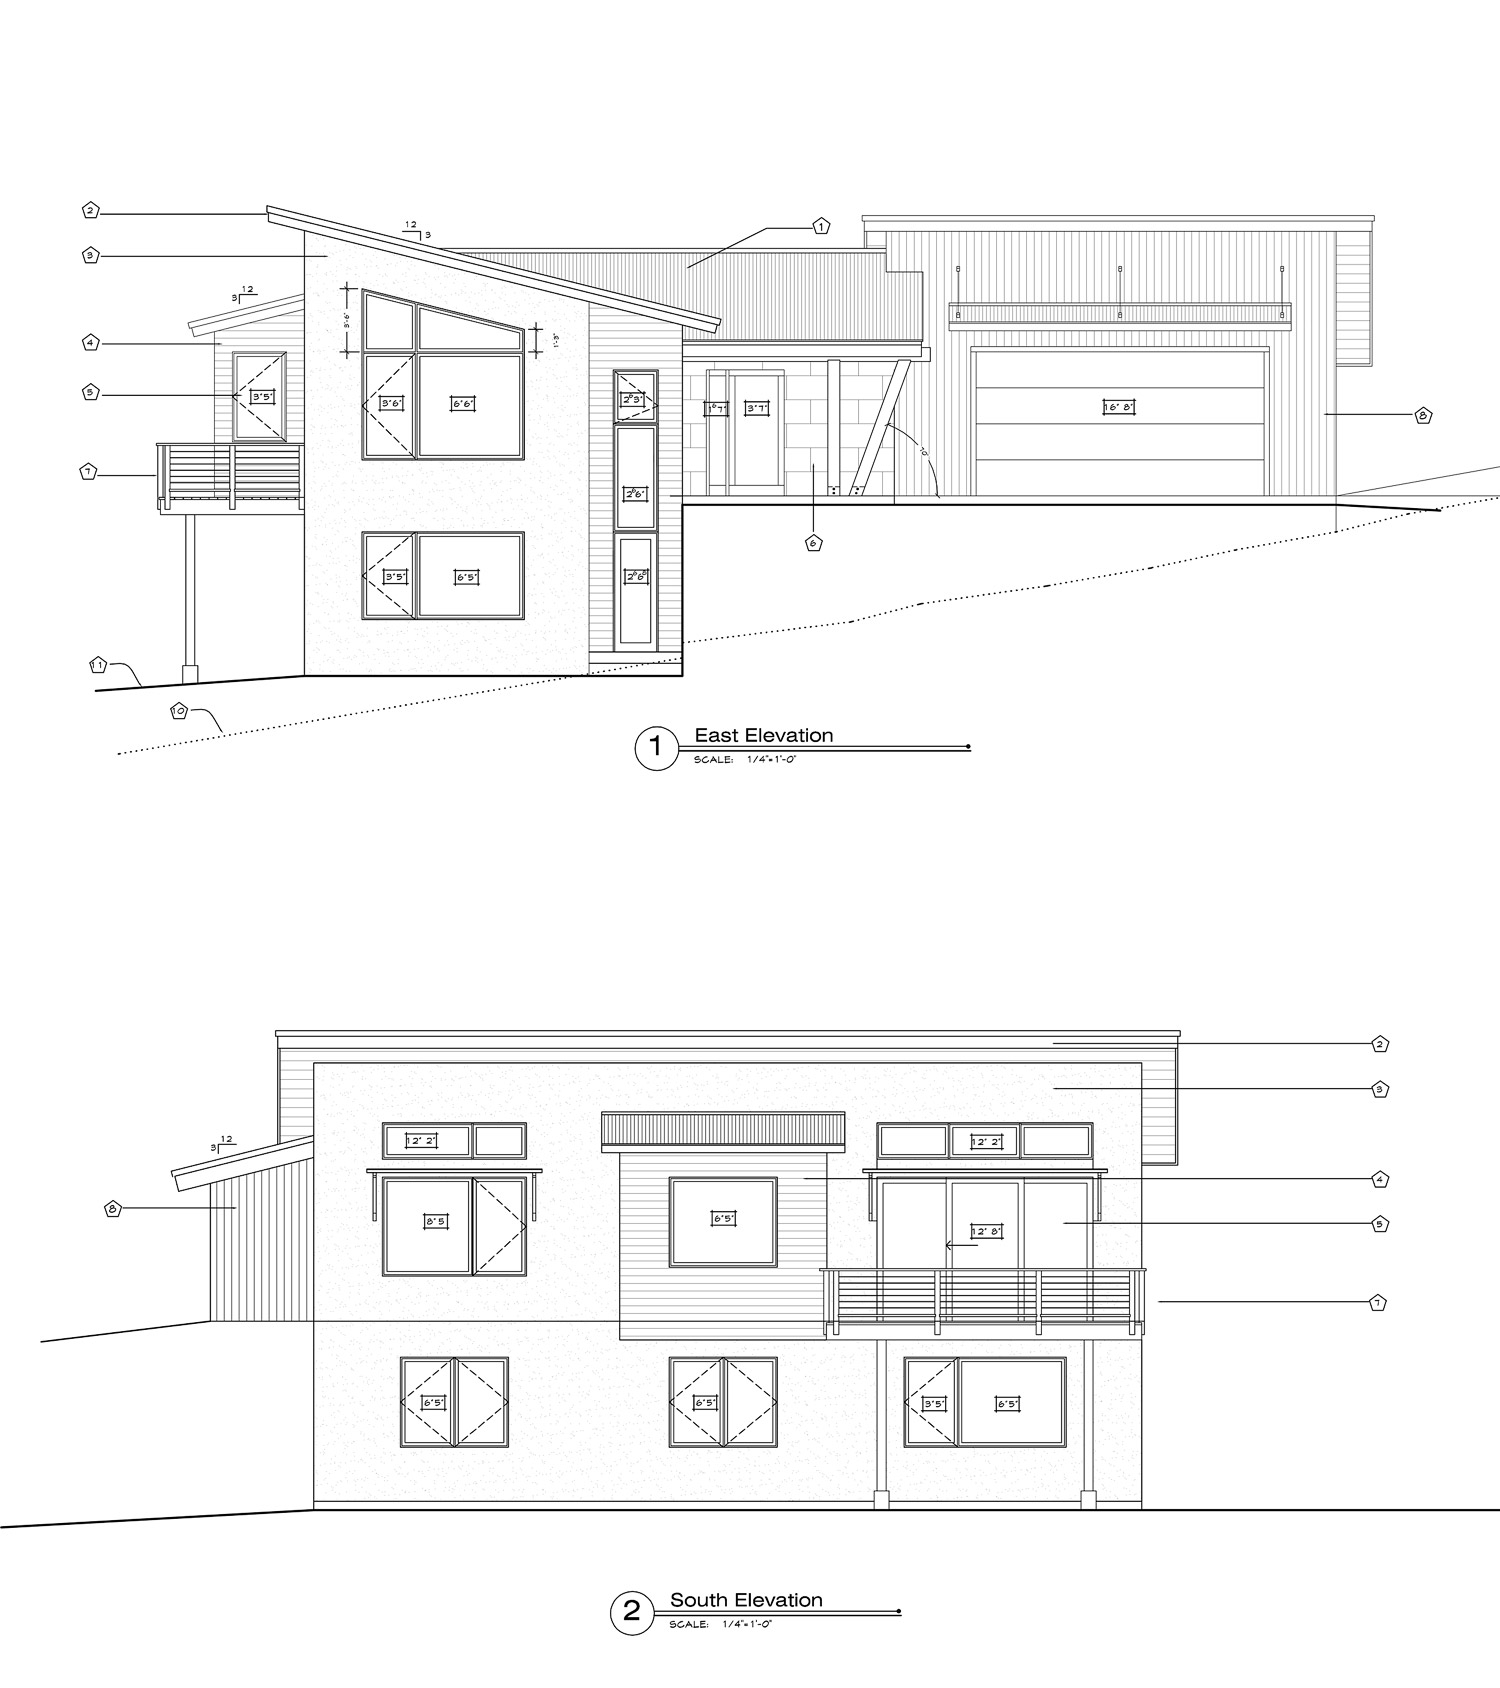 East and South Elevations